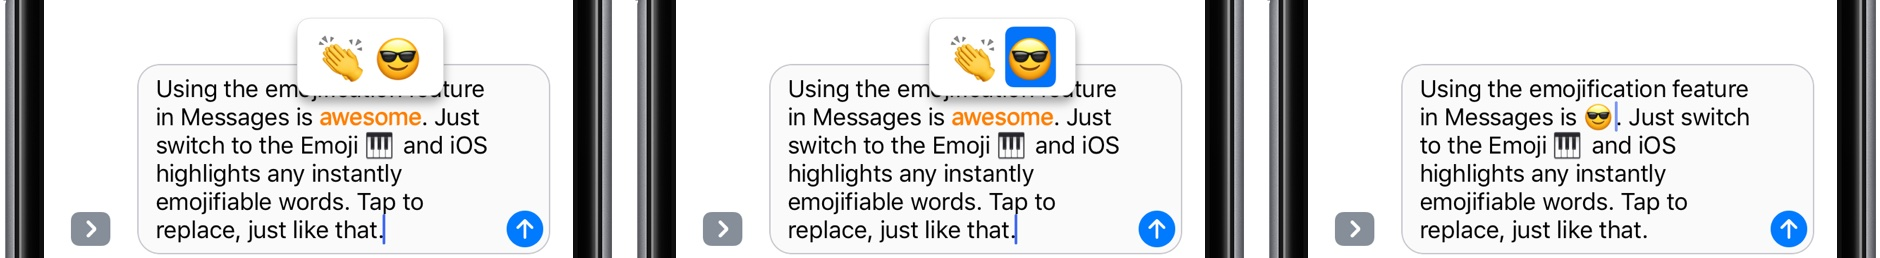 iOS 10 Messages tap to replace with emoji space gray iPhone screenshot 003